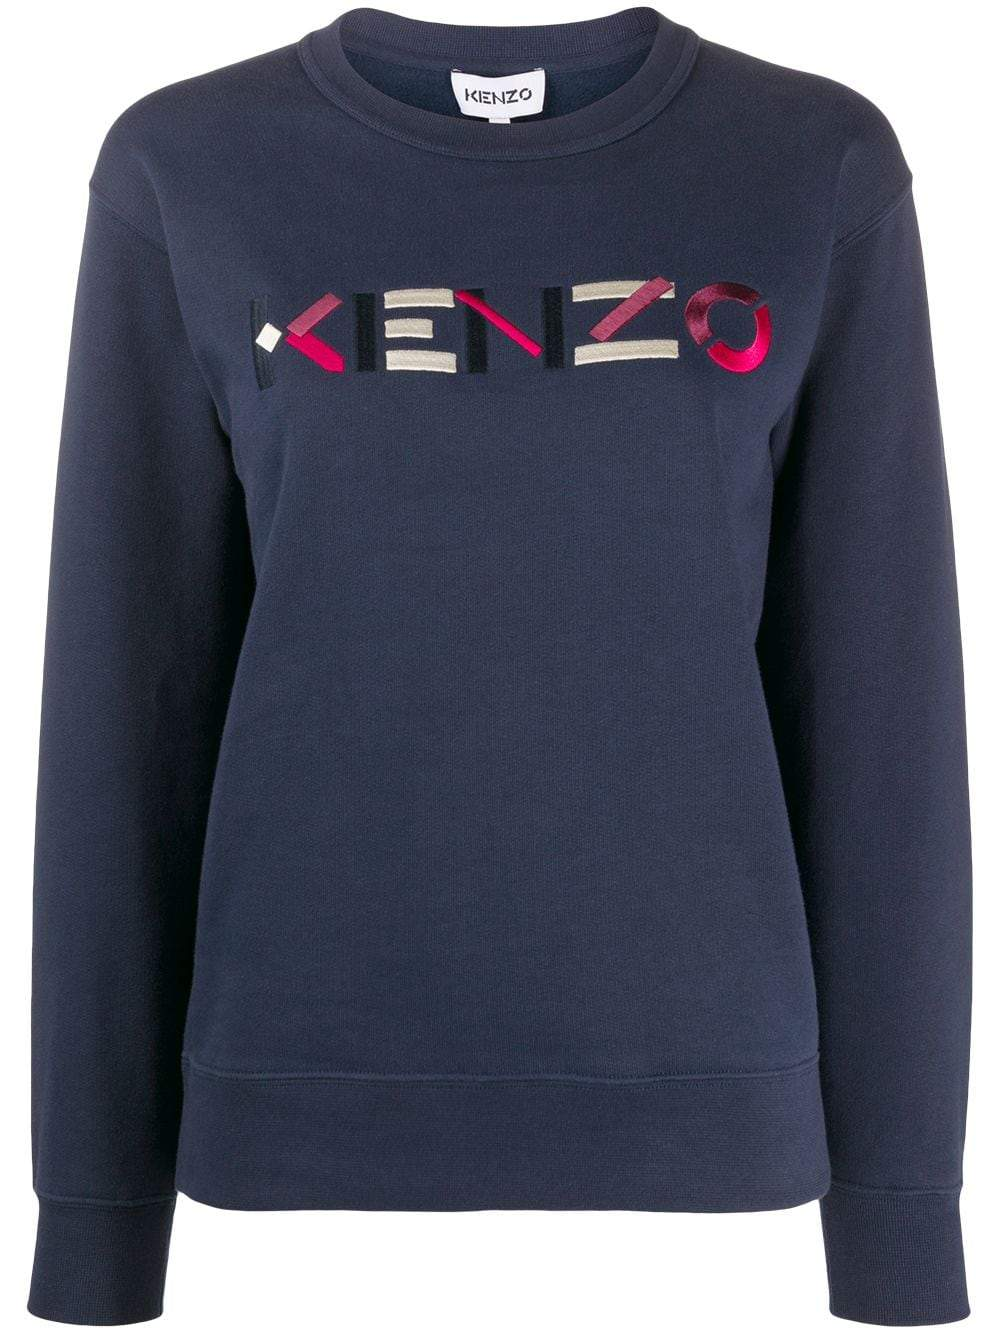 KENZO WOMEN Colour Logo Sweatshirt Navy